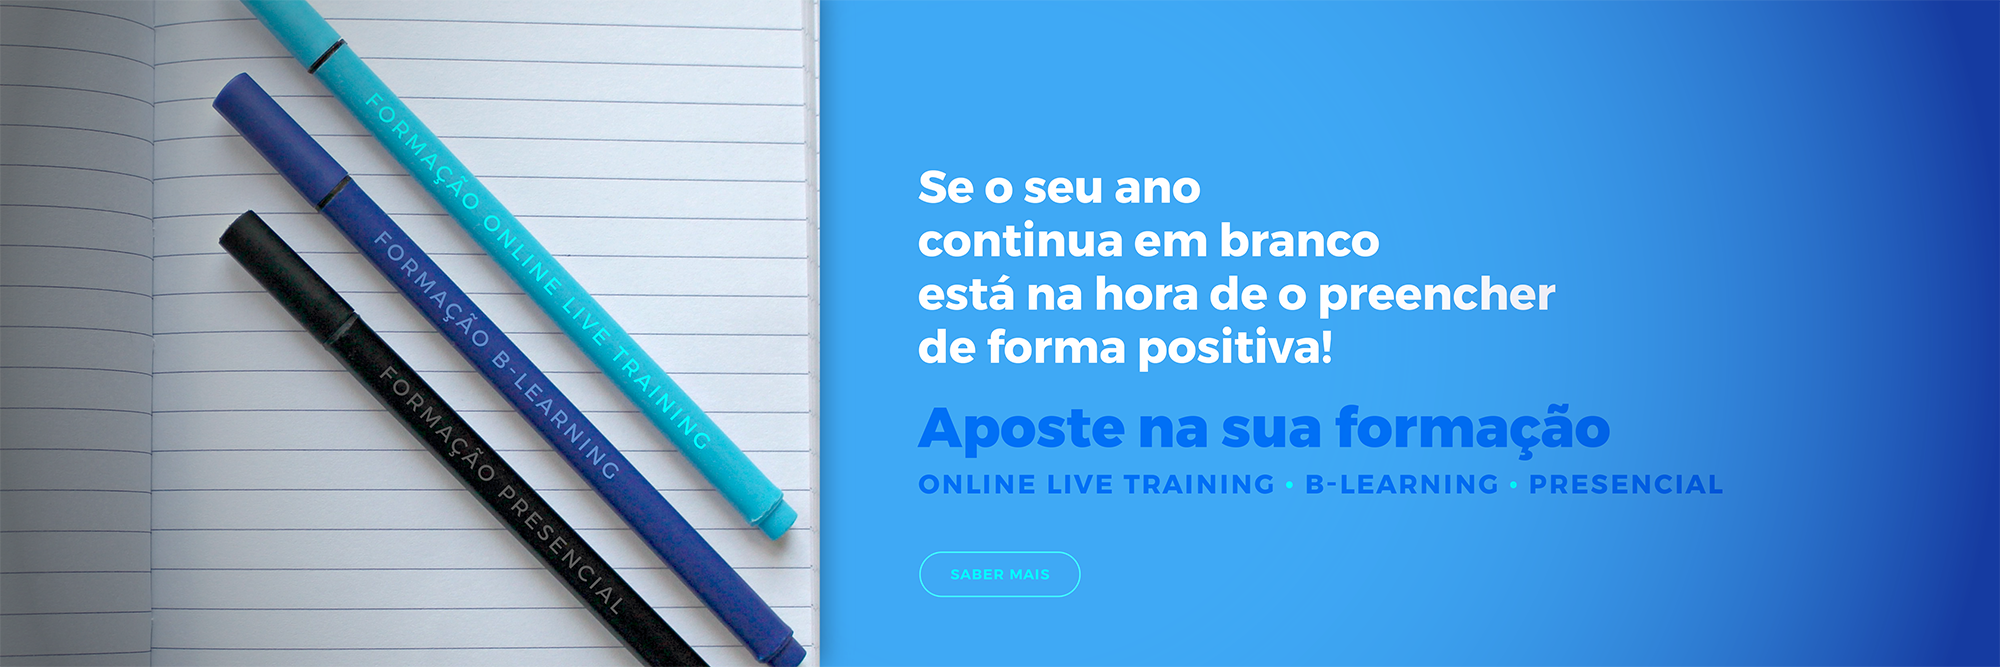 Formacao--Cursos--Online-Live-Training-B-learning-Presencial